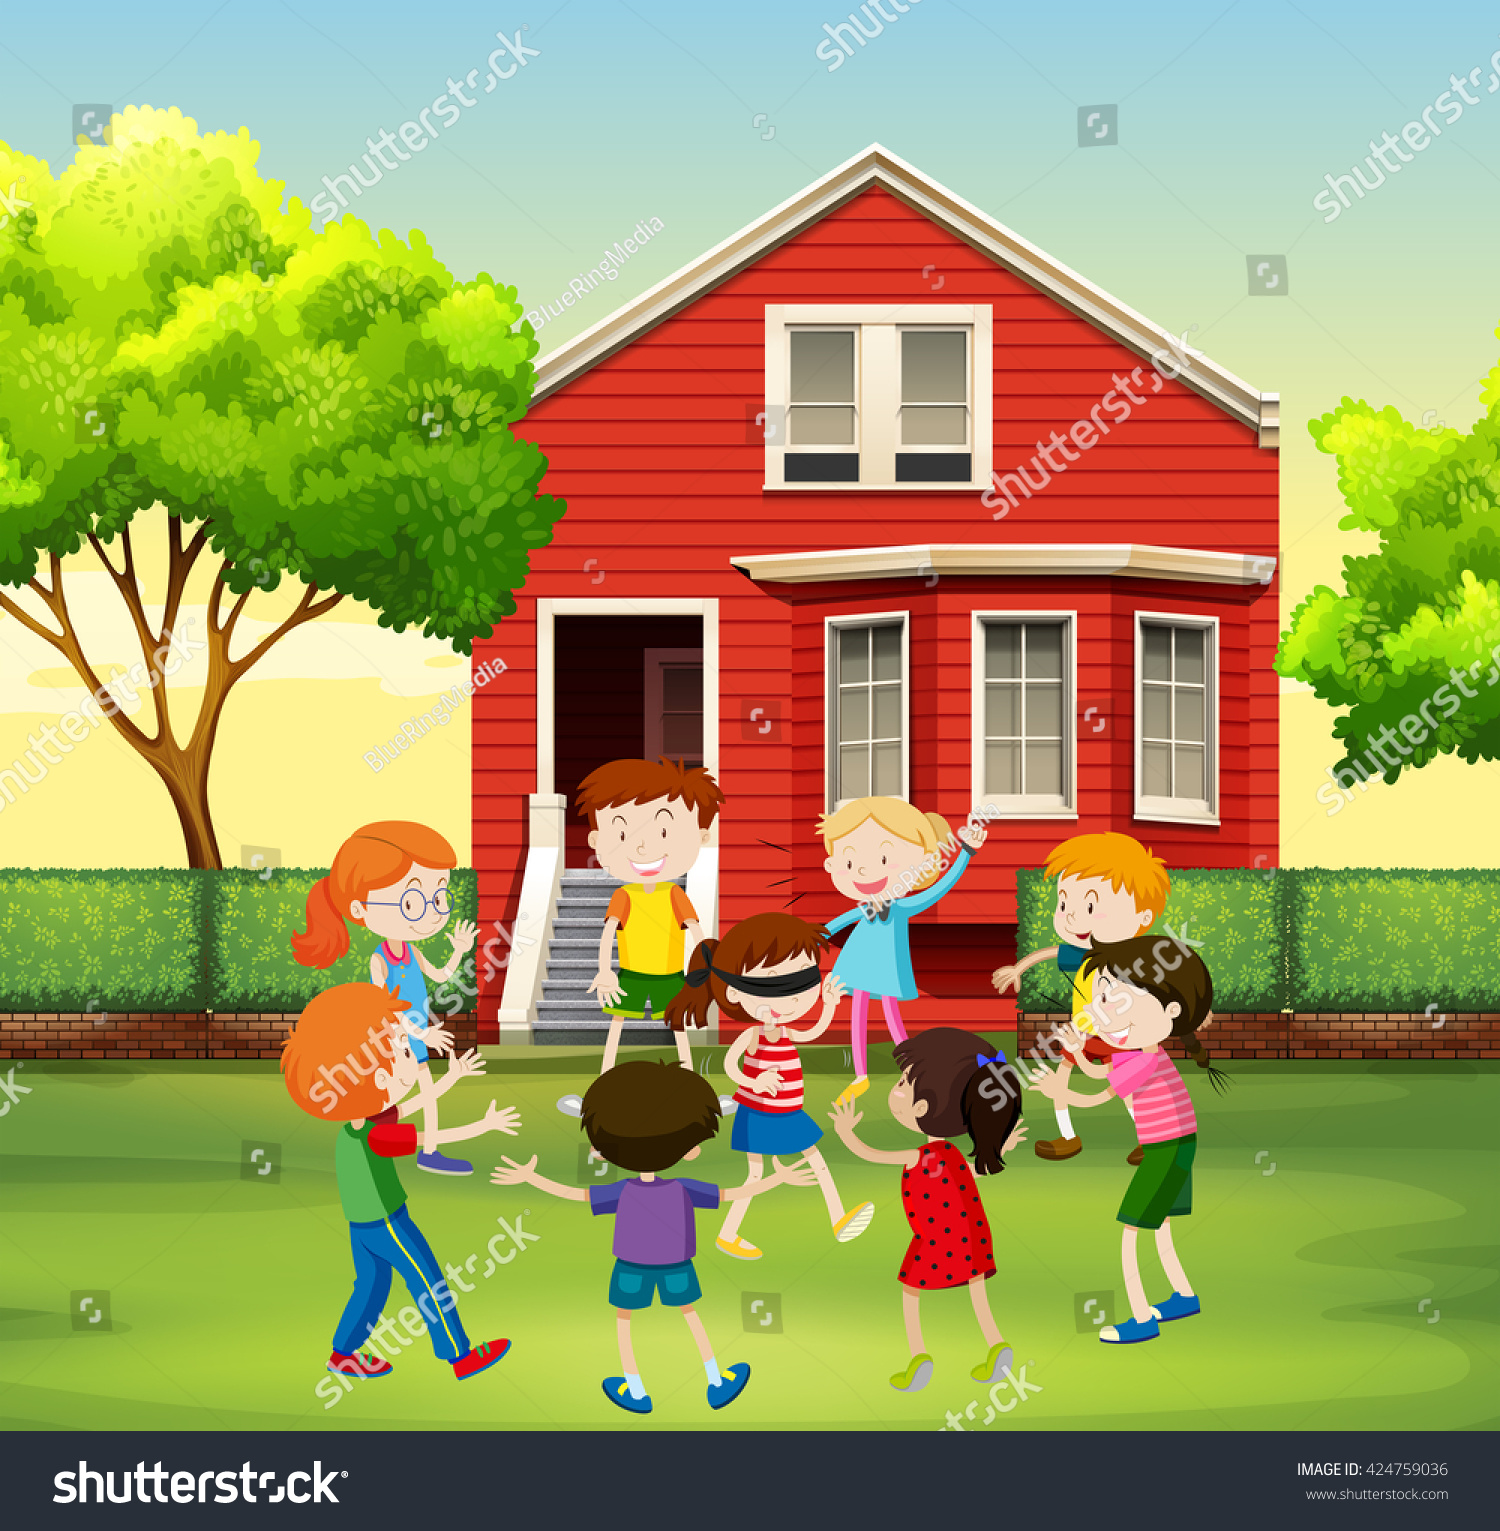 Children Playing Game Yard Illustration Stock Vector